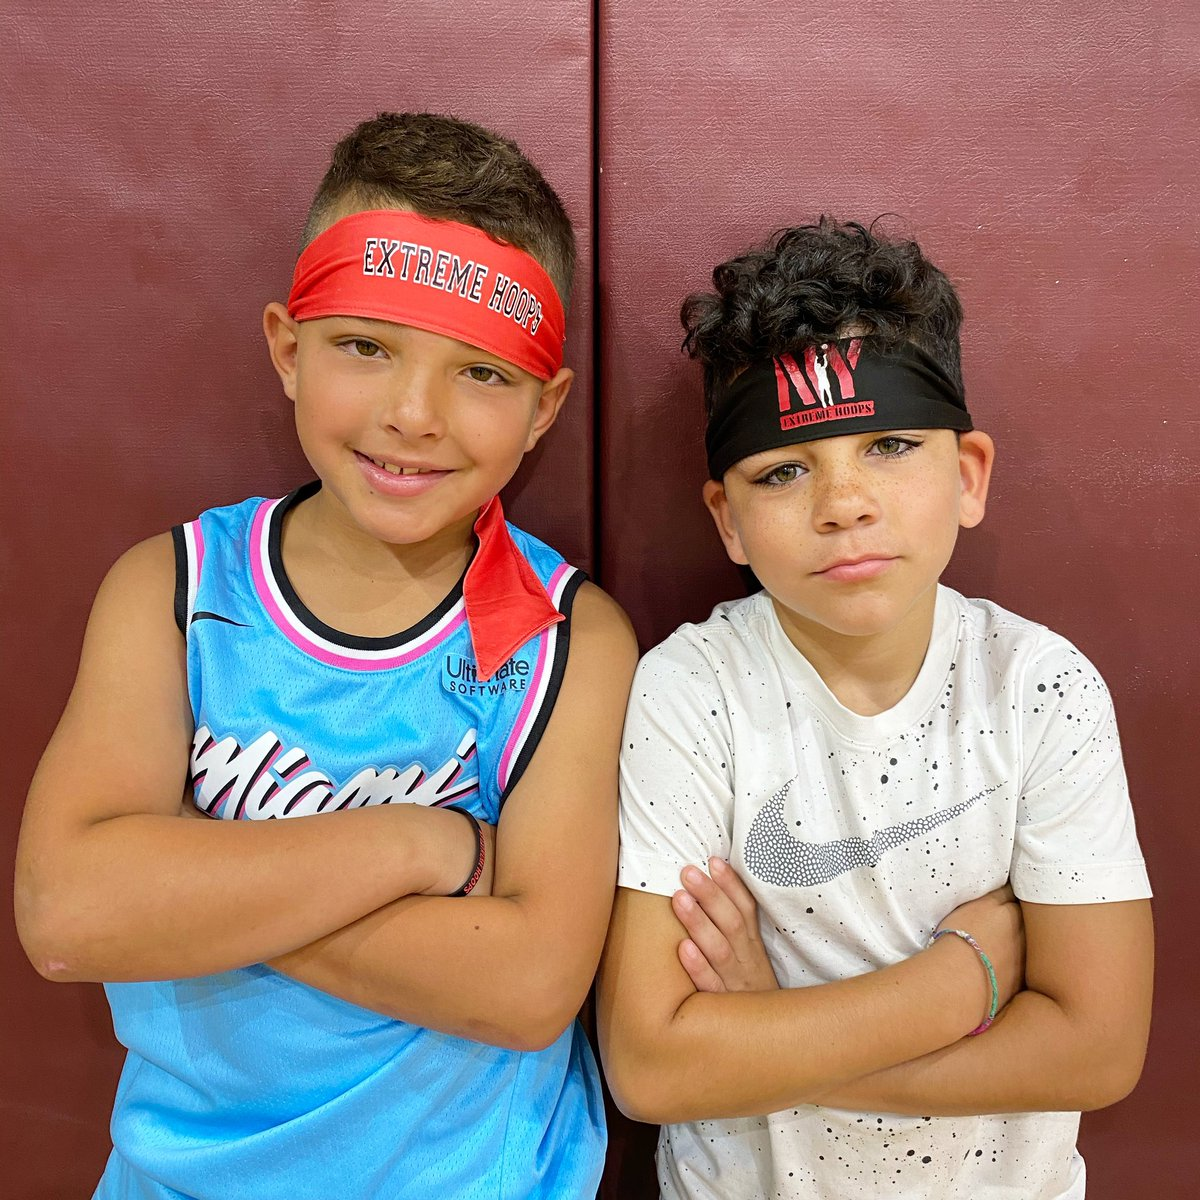 3rd grade ballers Chase and Gio rocking the Extreme Hoops headbands 🔥🔥🔥 https://t.co/fnycwIbswn